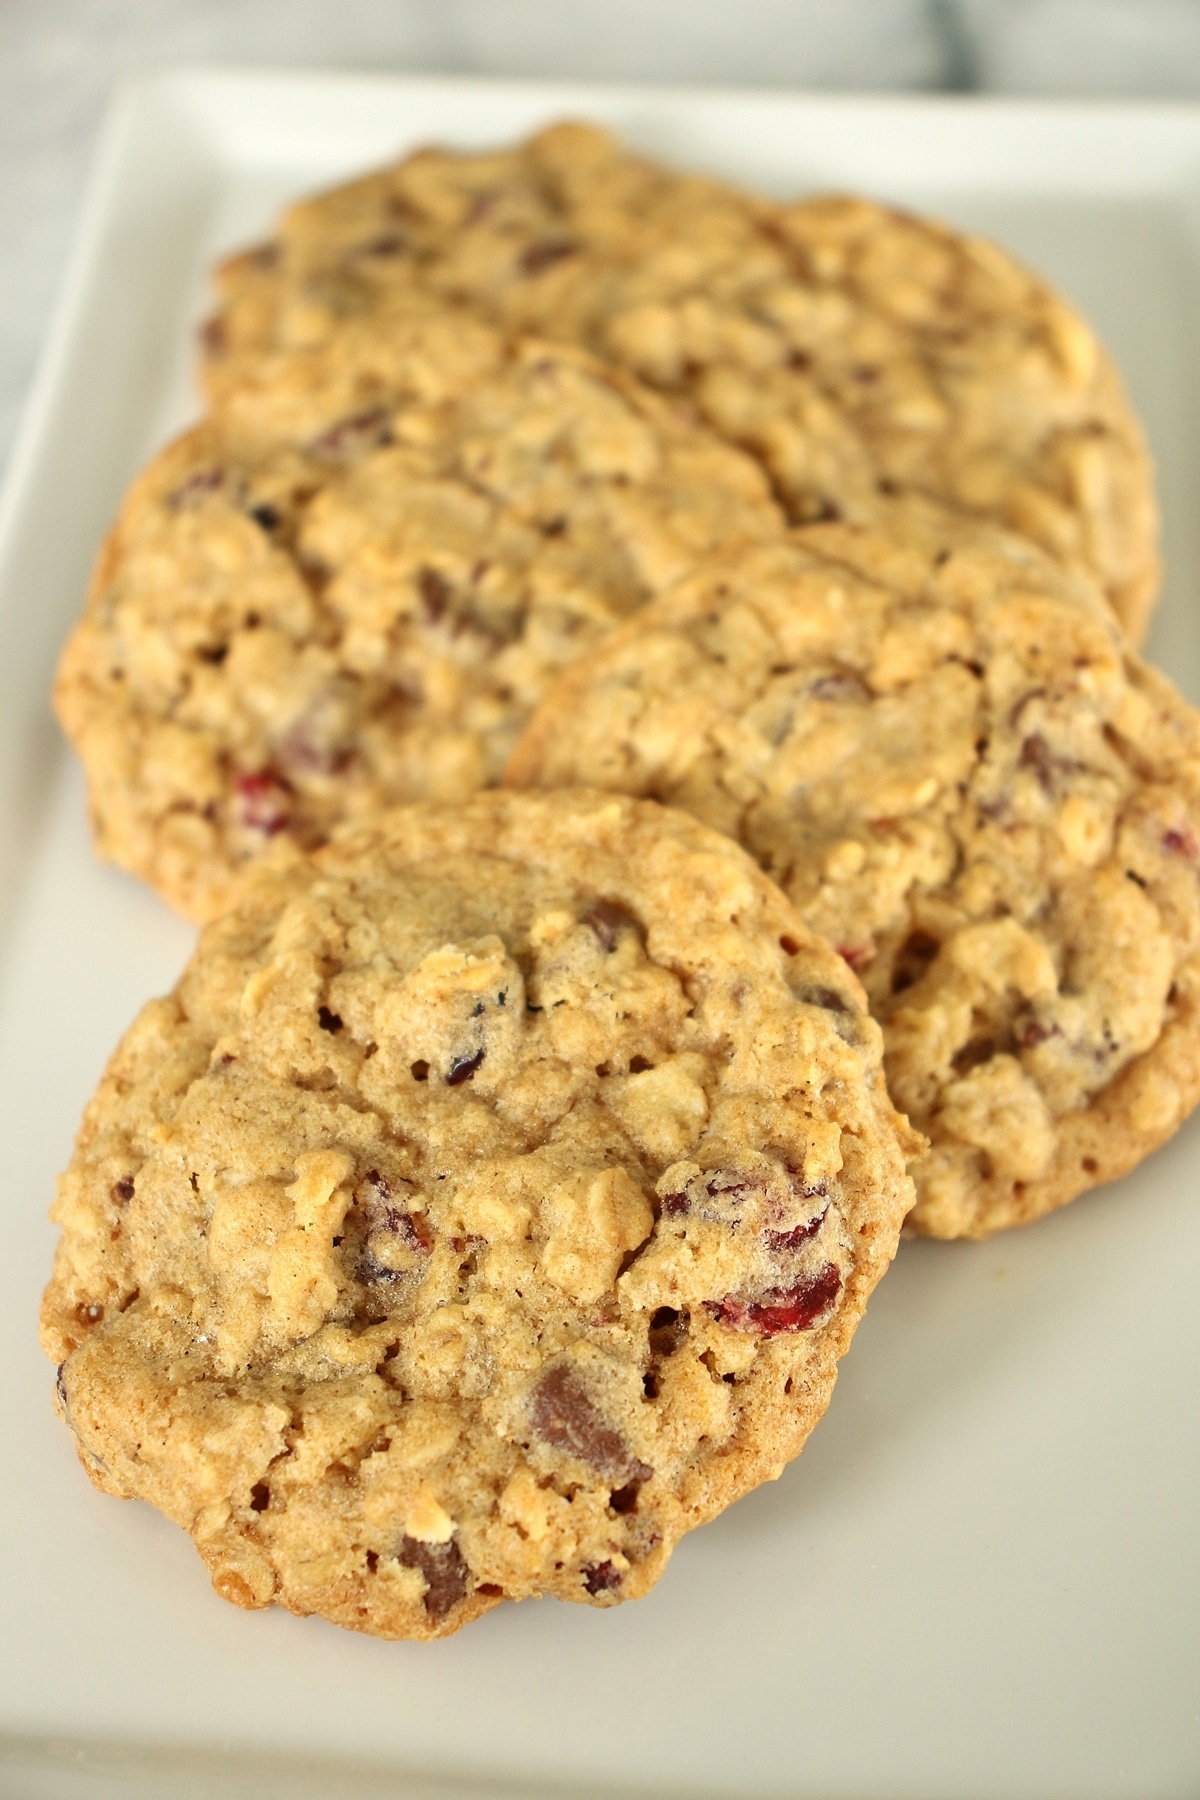 Closeup of 5 oatmeal cranberry chocolate chip cookies on a rectangular white plate.